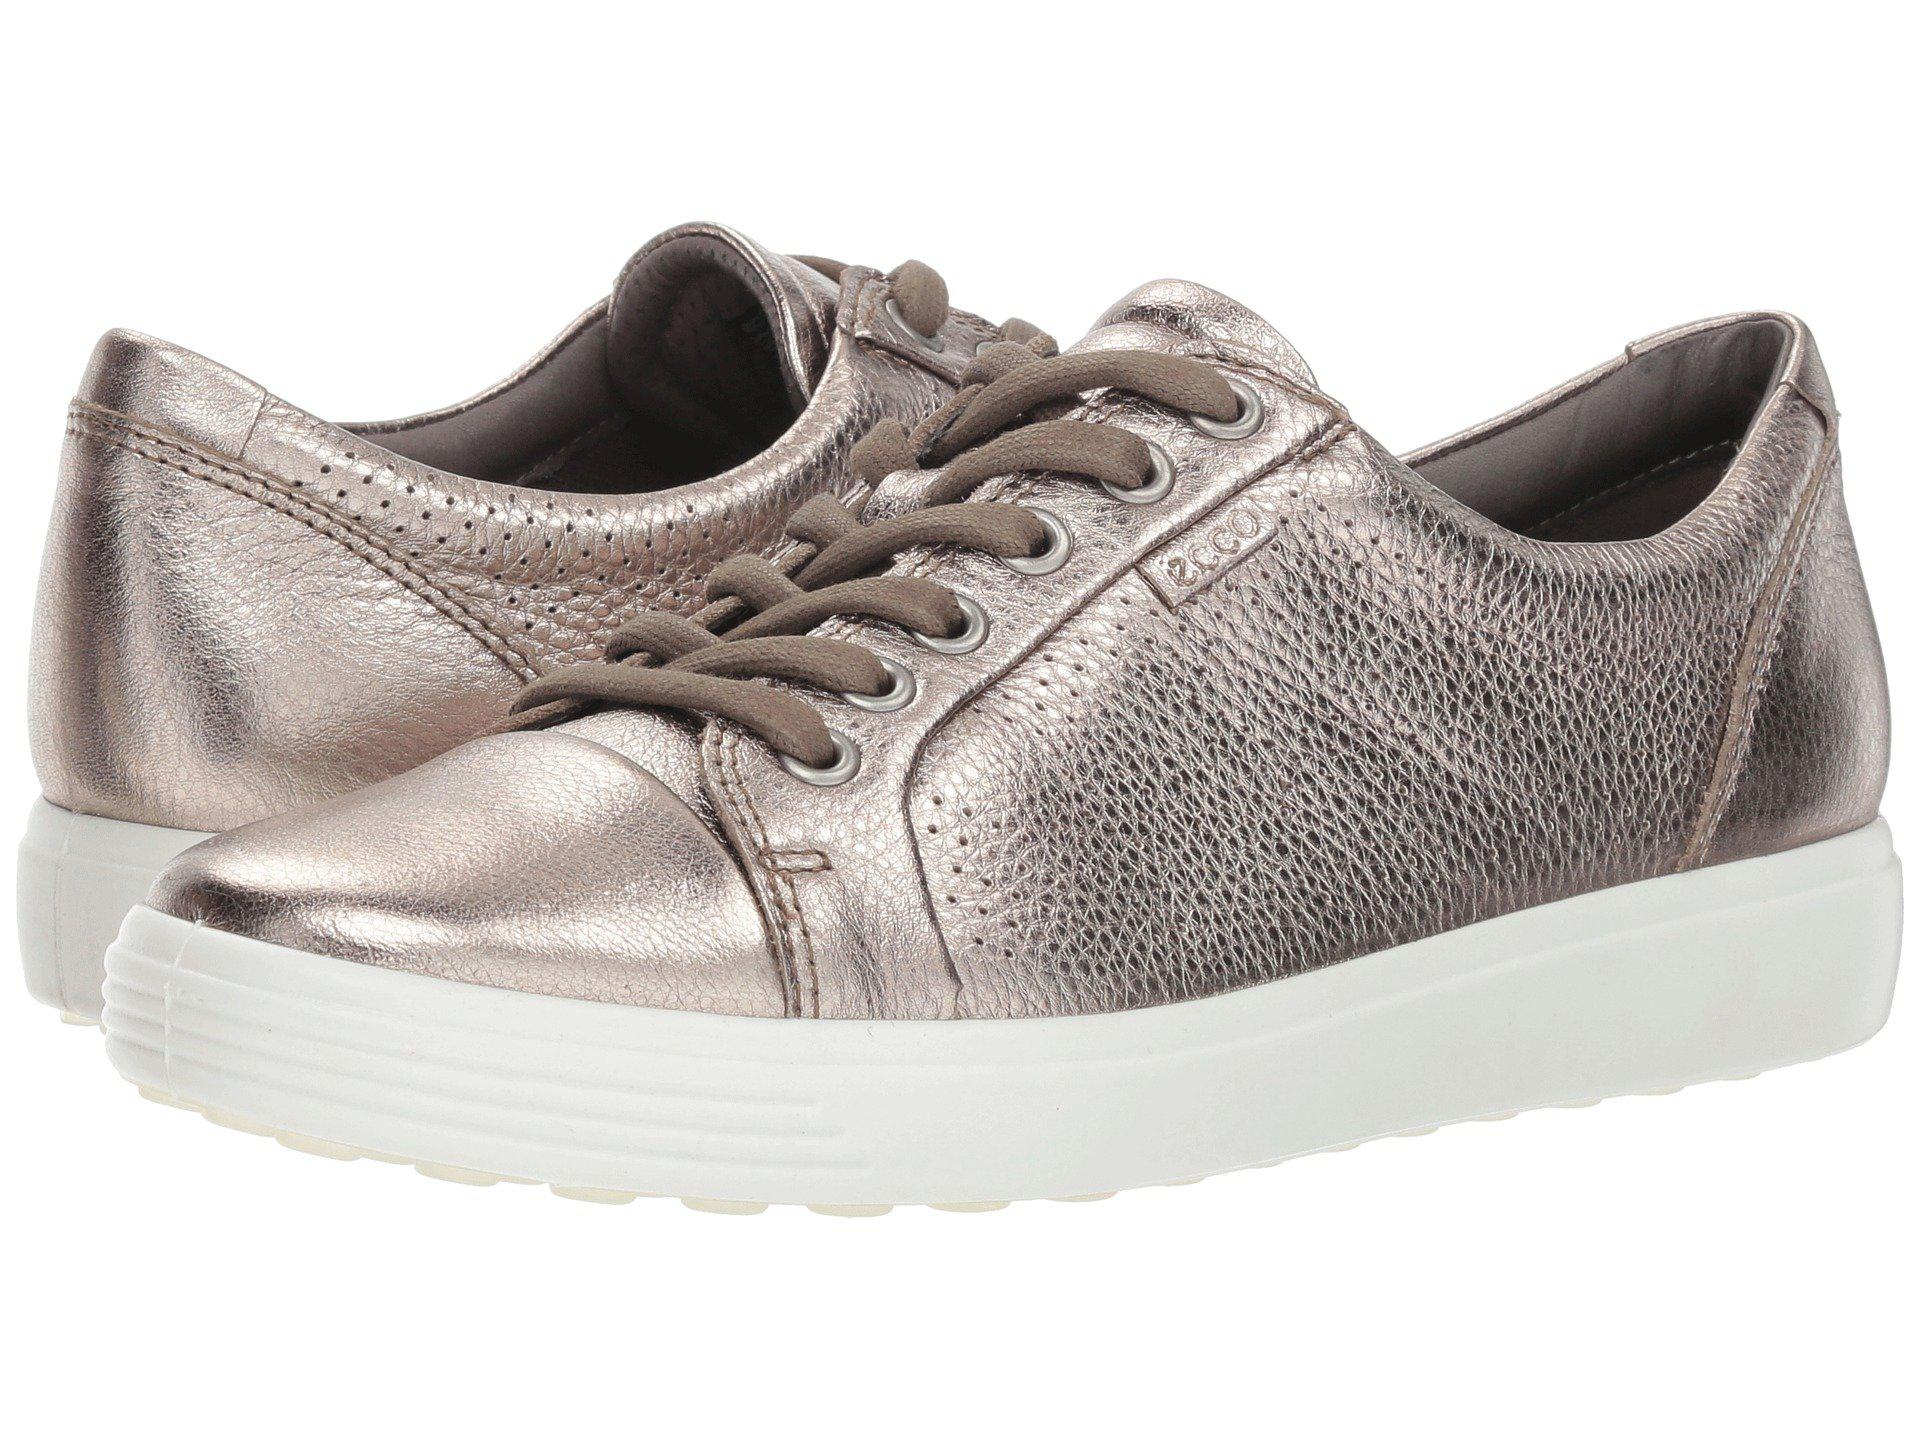 7b83870ae145 Lyst - Ecco Soft 7 Perf Tie (warm Grey Cow Leather) Women s Shoes in ...